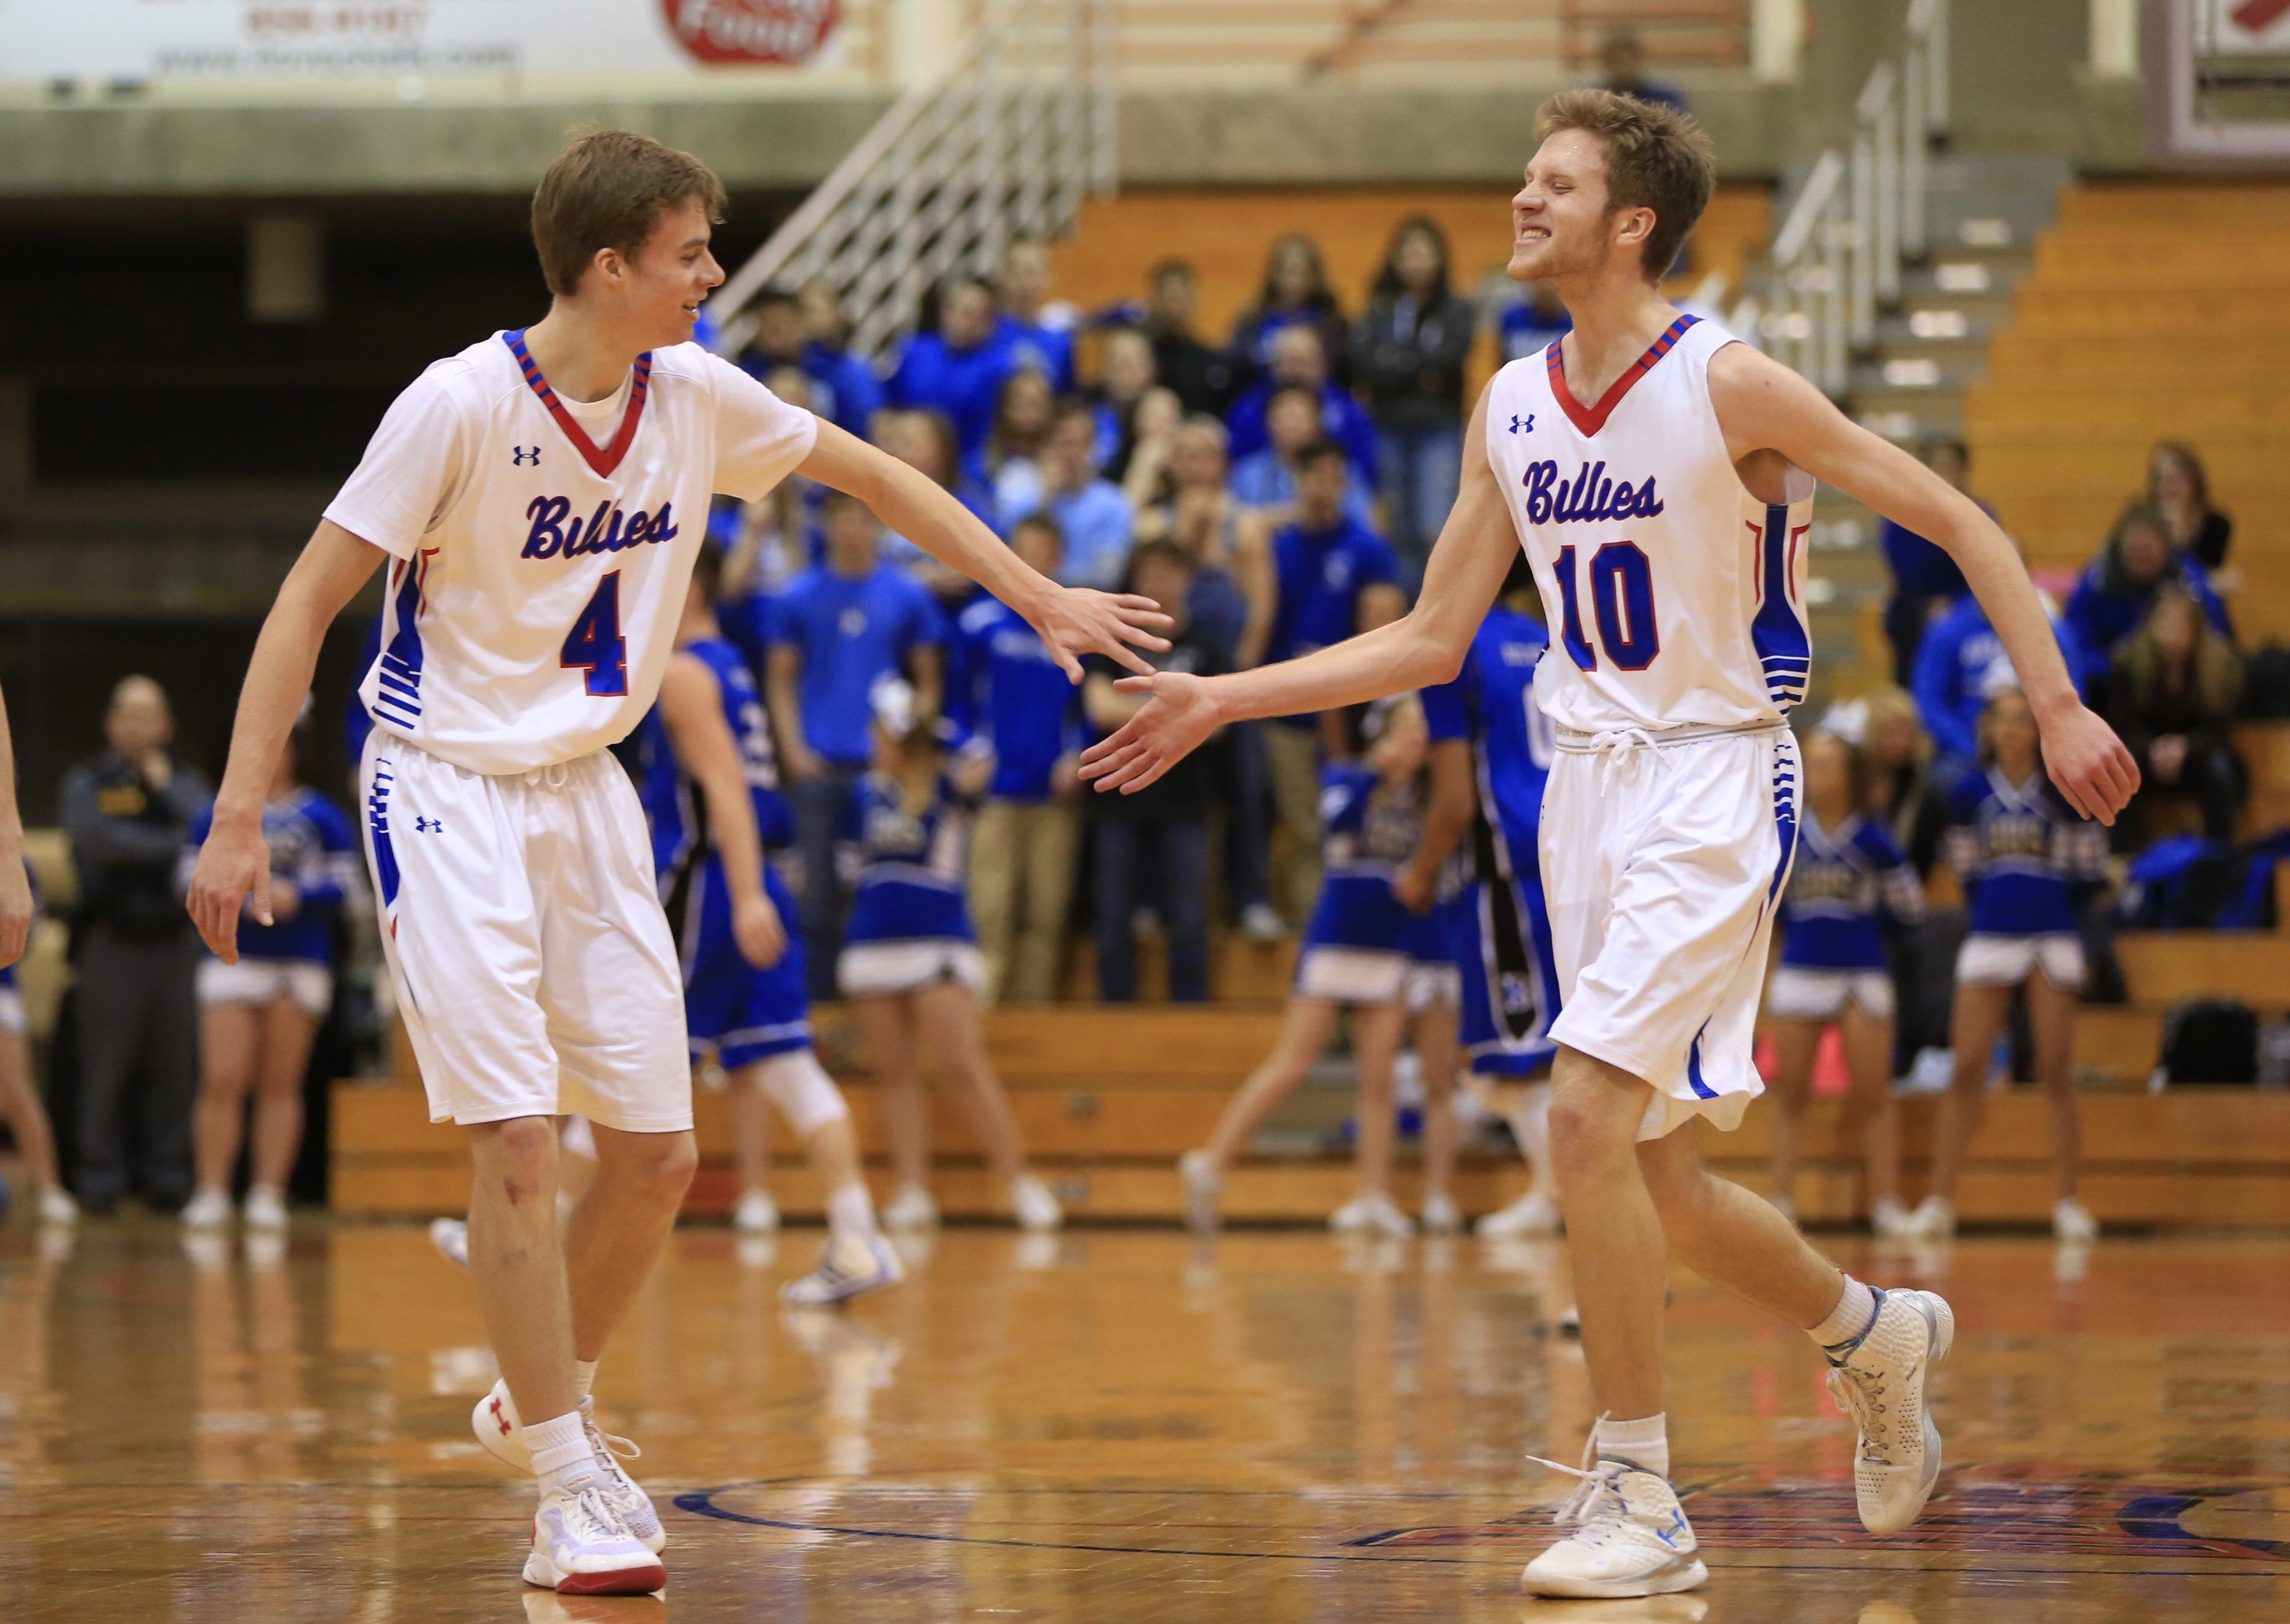 Greg Dolan (4) and his brother, Graham (10) lead Williamsville South into the state Class A final four on Saturday in Glens Falls.